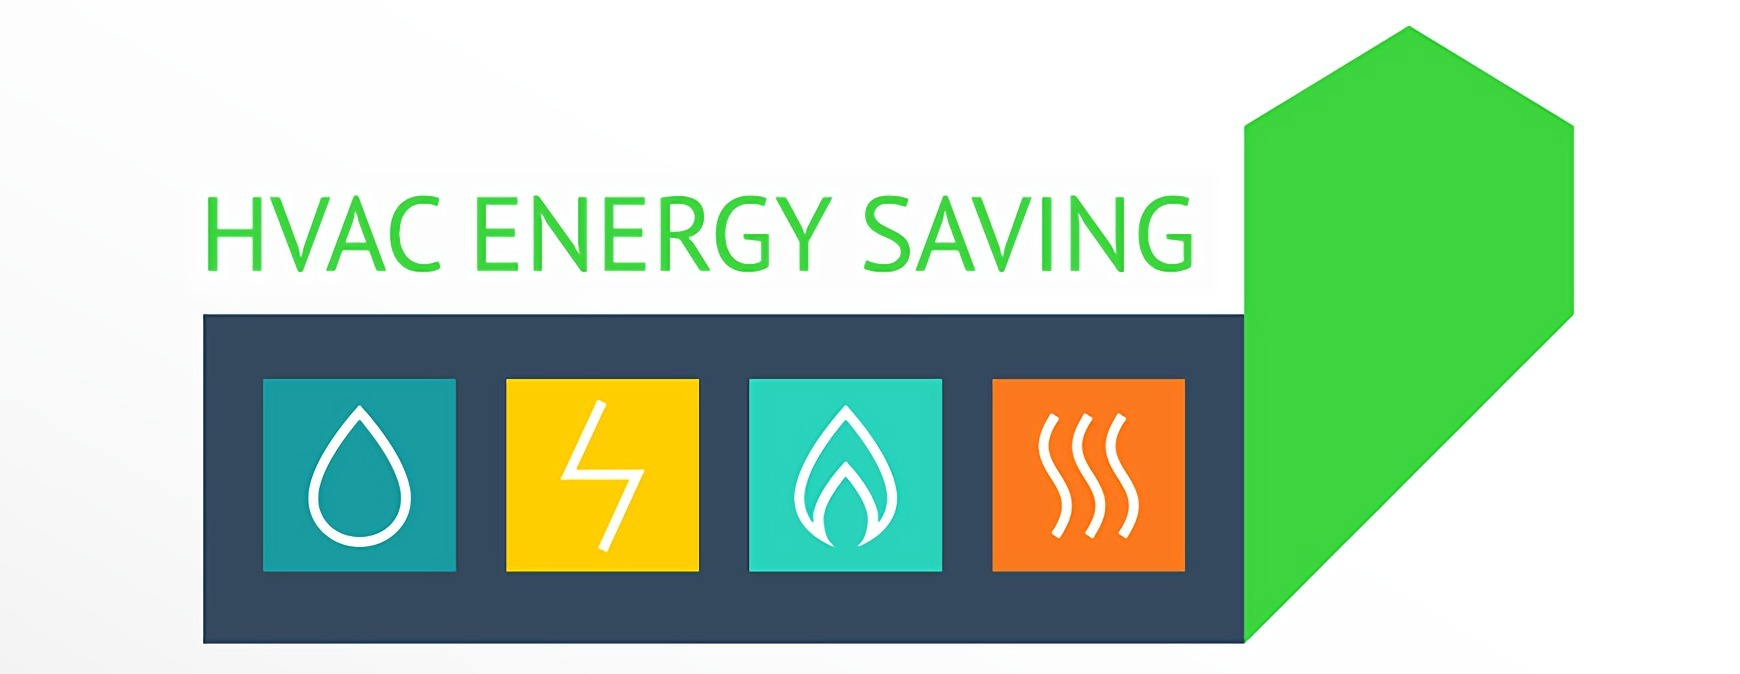 hvac energy saving